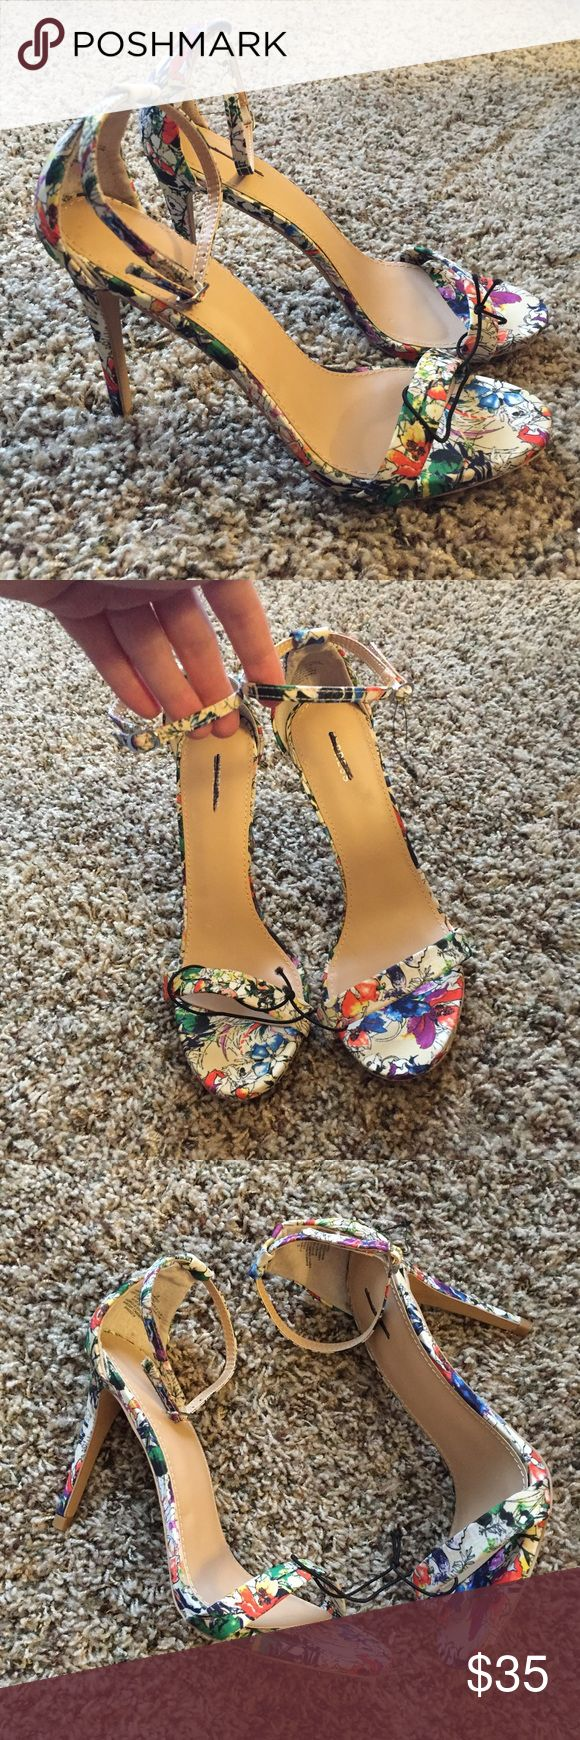 "NEW! Express Flower Strap Heel Sandals NEW! Express Flower Strap Heel Sandals in size 8. Beautiful flower print that will add a pop of color and spring to your outfit. Mlack strike through on inside sole over Express brand. 4"" heel. Express Shoes Sandals"